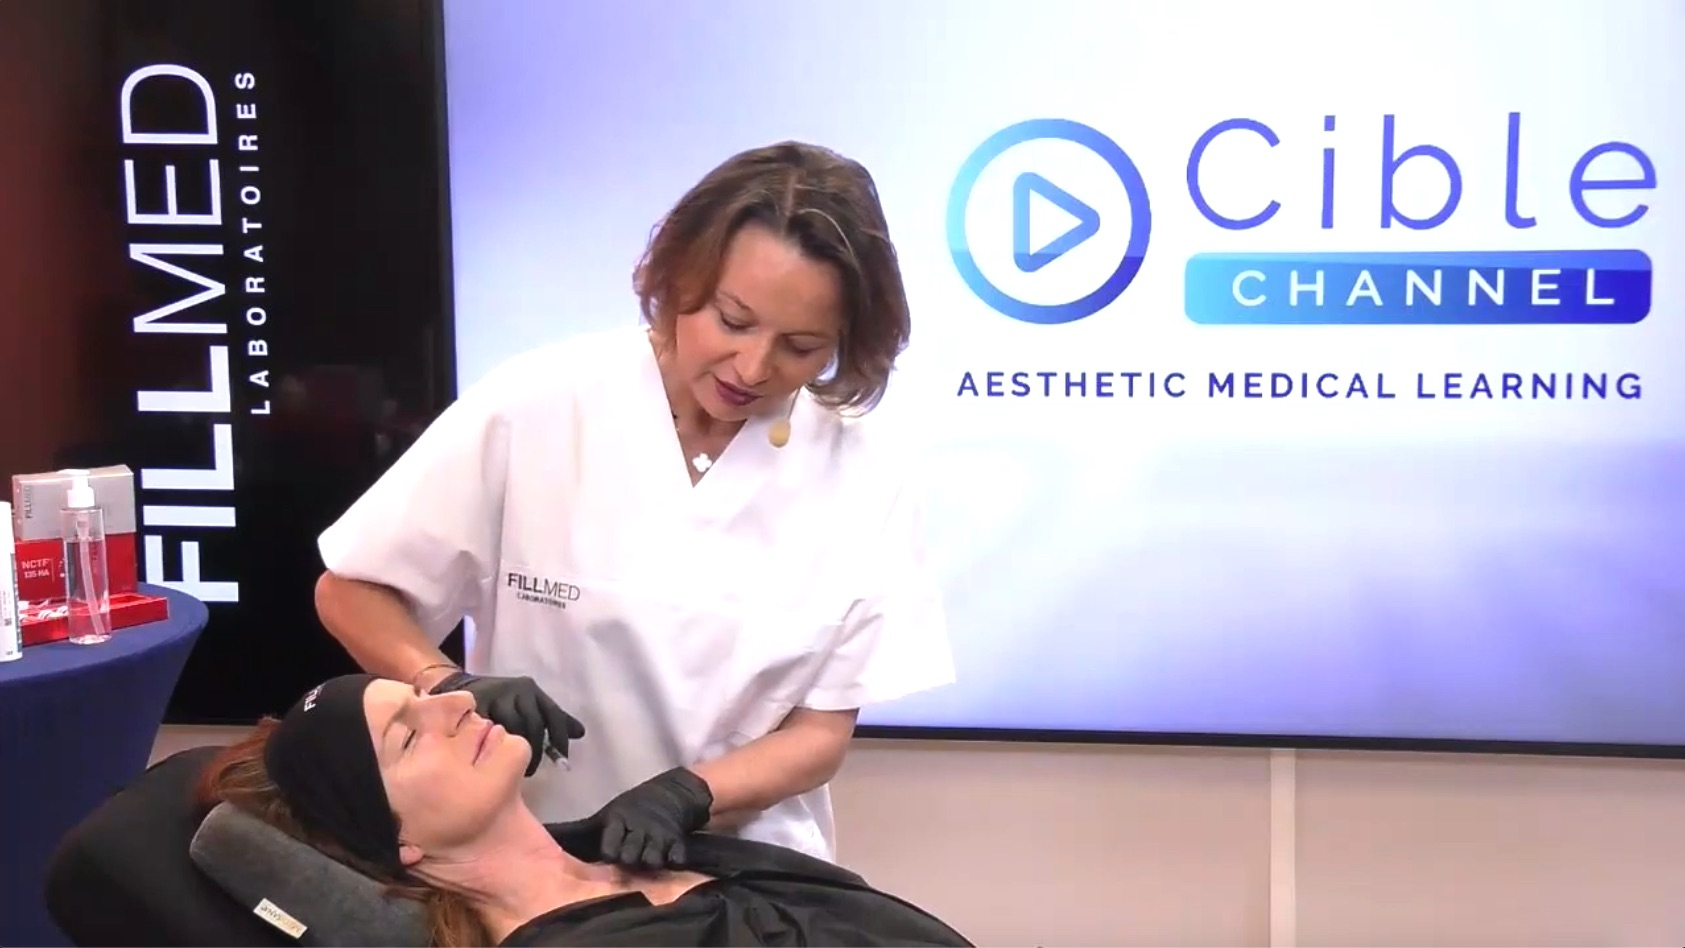 Neck and decolleté : Multi-layer approach to rejuvenate with NanoSoft and NCTF